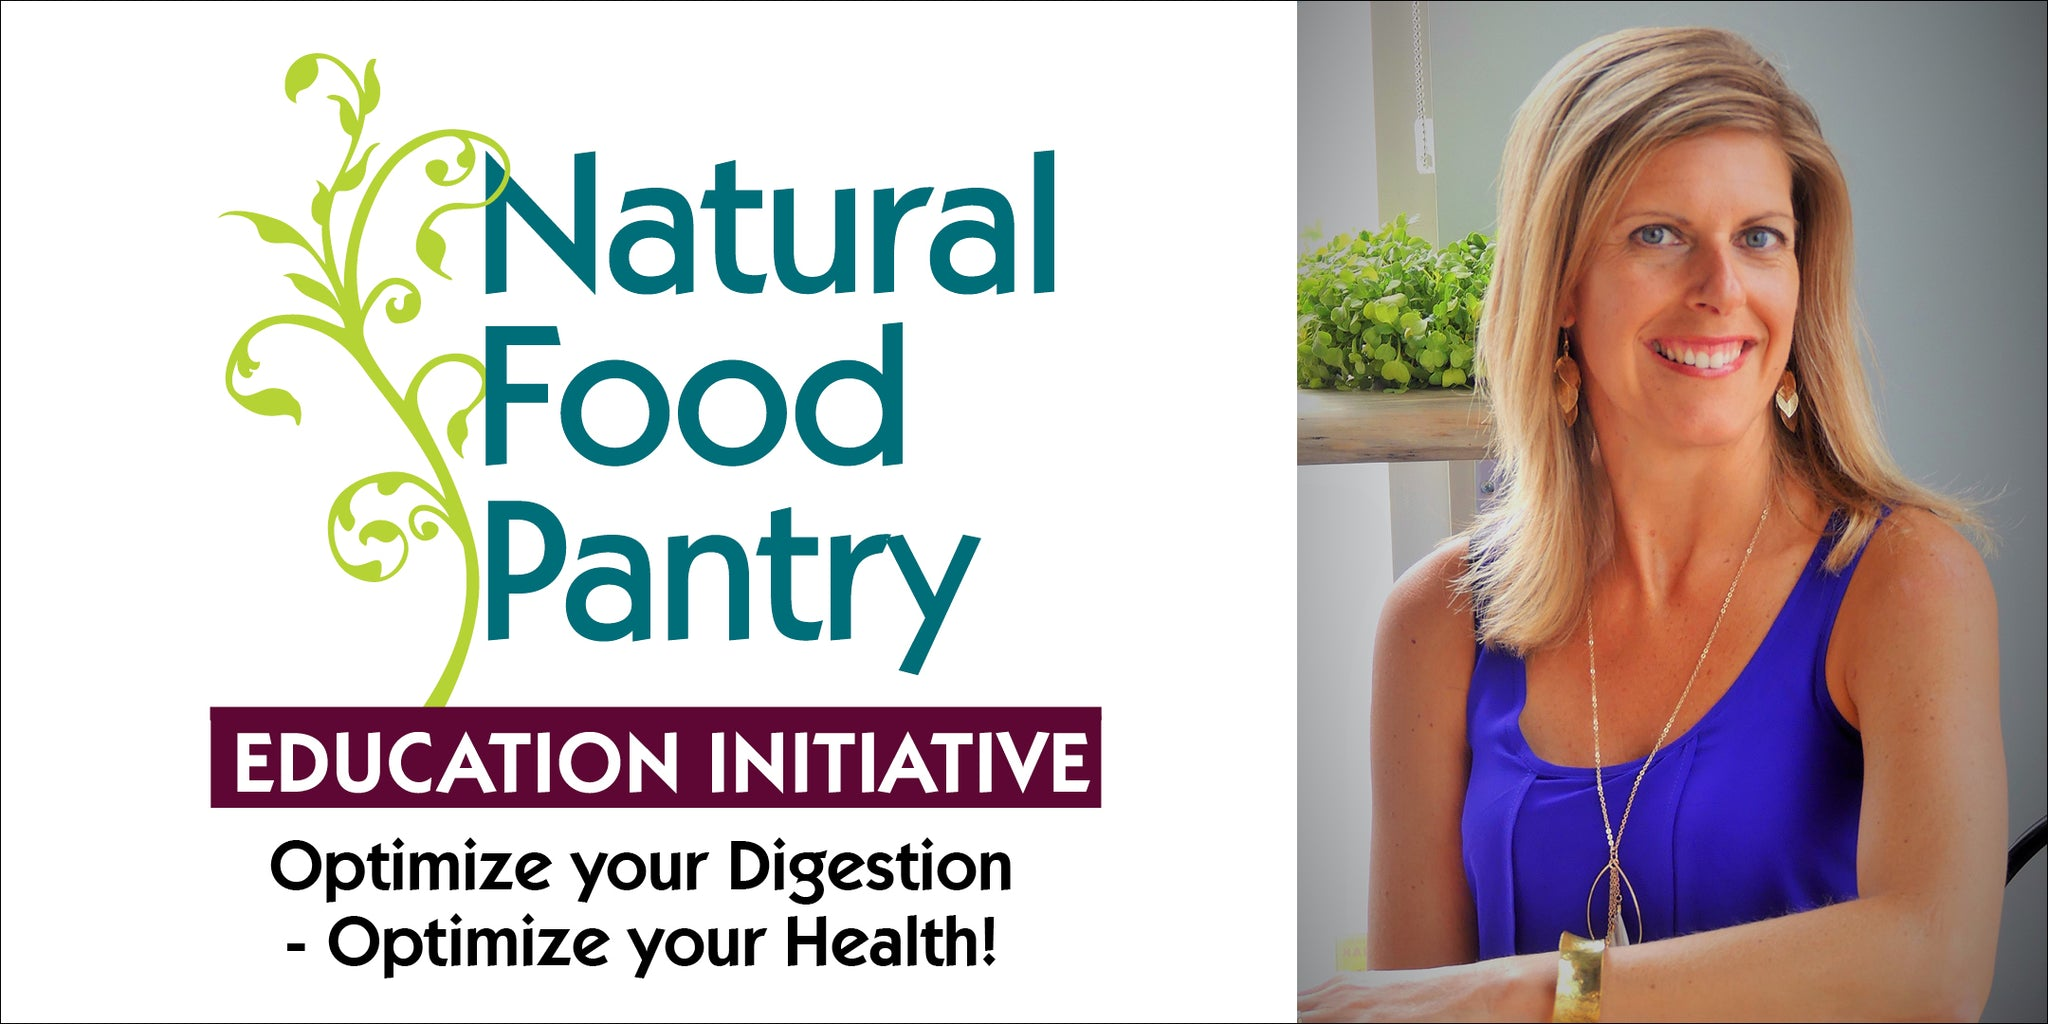 Sep 19: Optimize your Digestion for Optimal Health